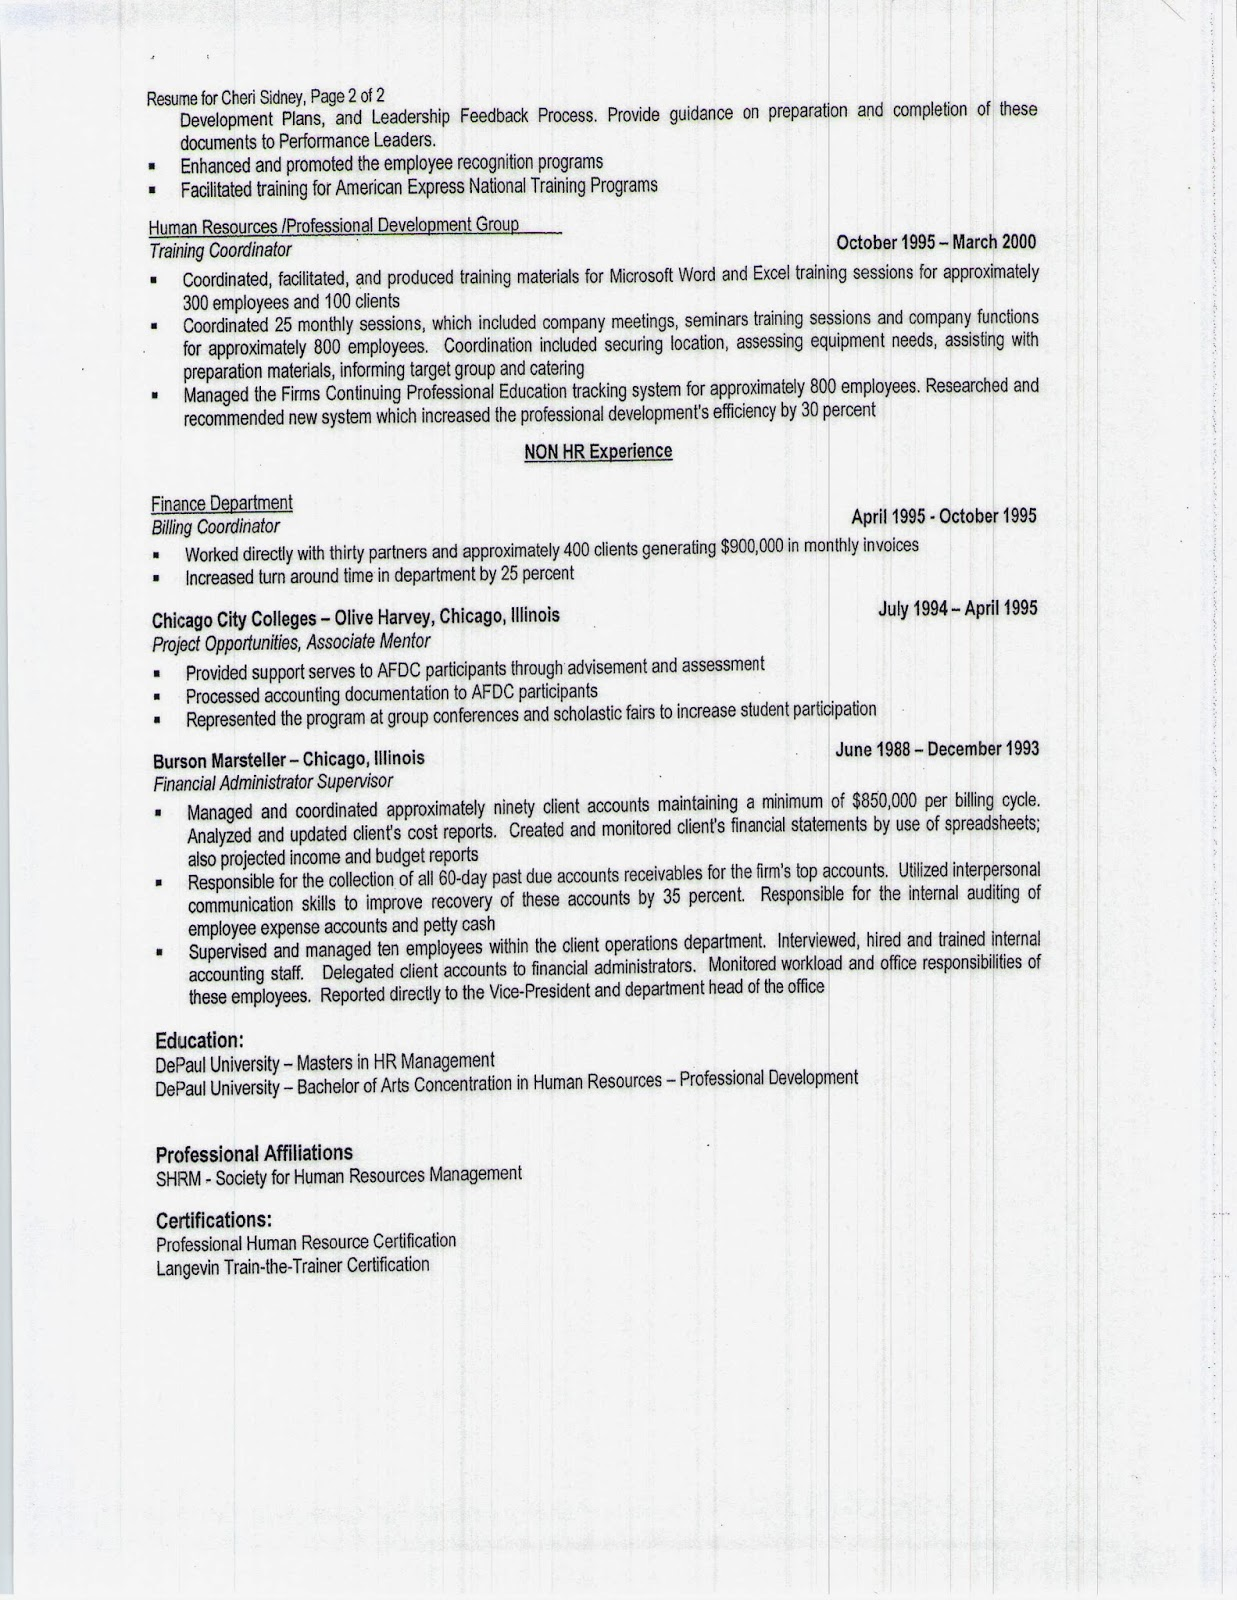 027 Essay Example Nursing Application Tips How To Write An Letter With Apply Forhip And Sidney0001 Jpg W 1237x1600px Singular Scholarship Rotc Psc Reddit Full